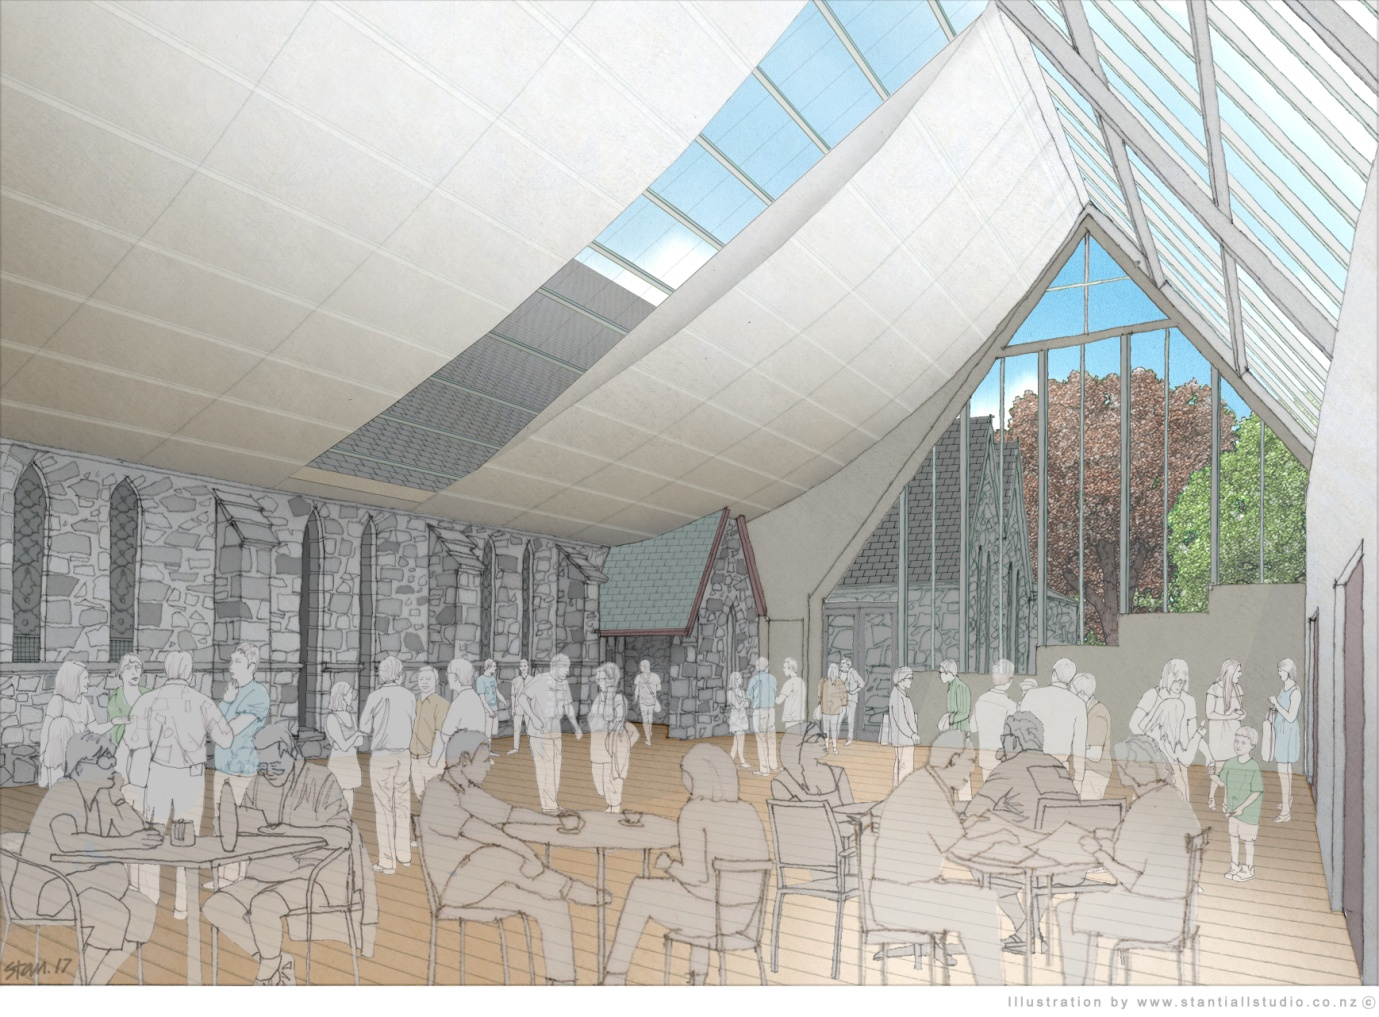 An Artist's impression of the Sir Paul Reeves Atrium